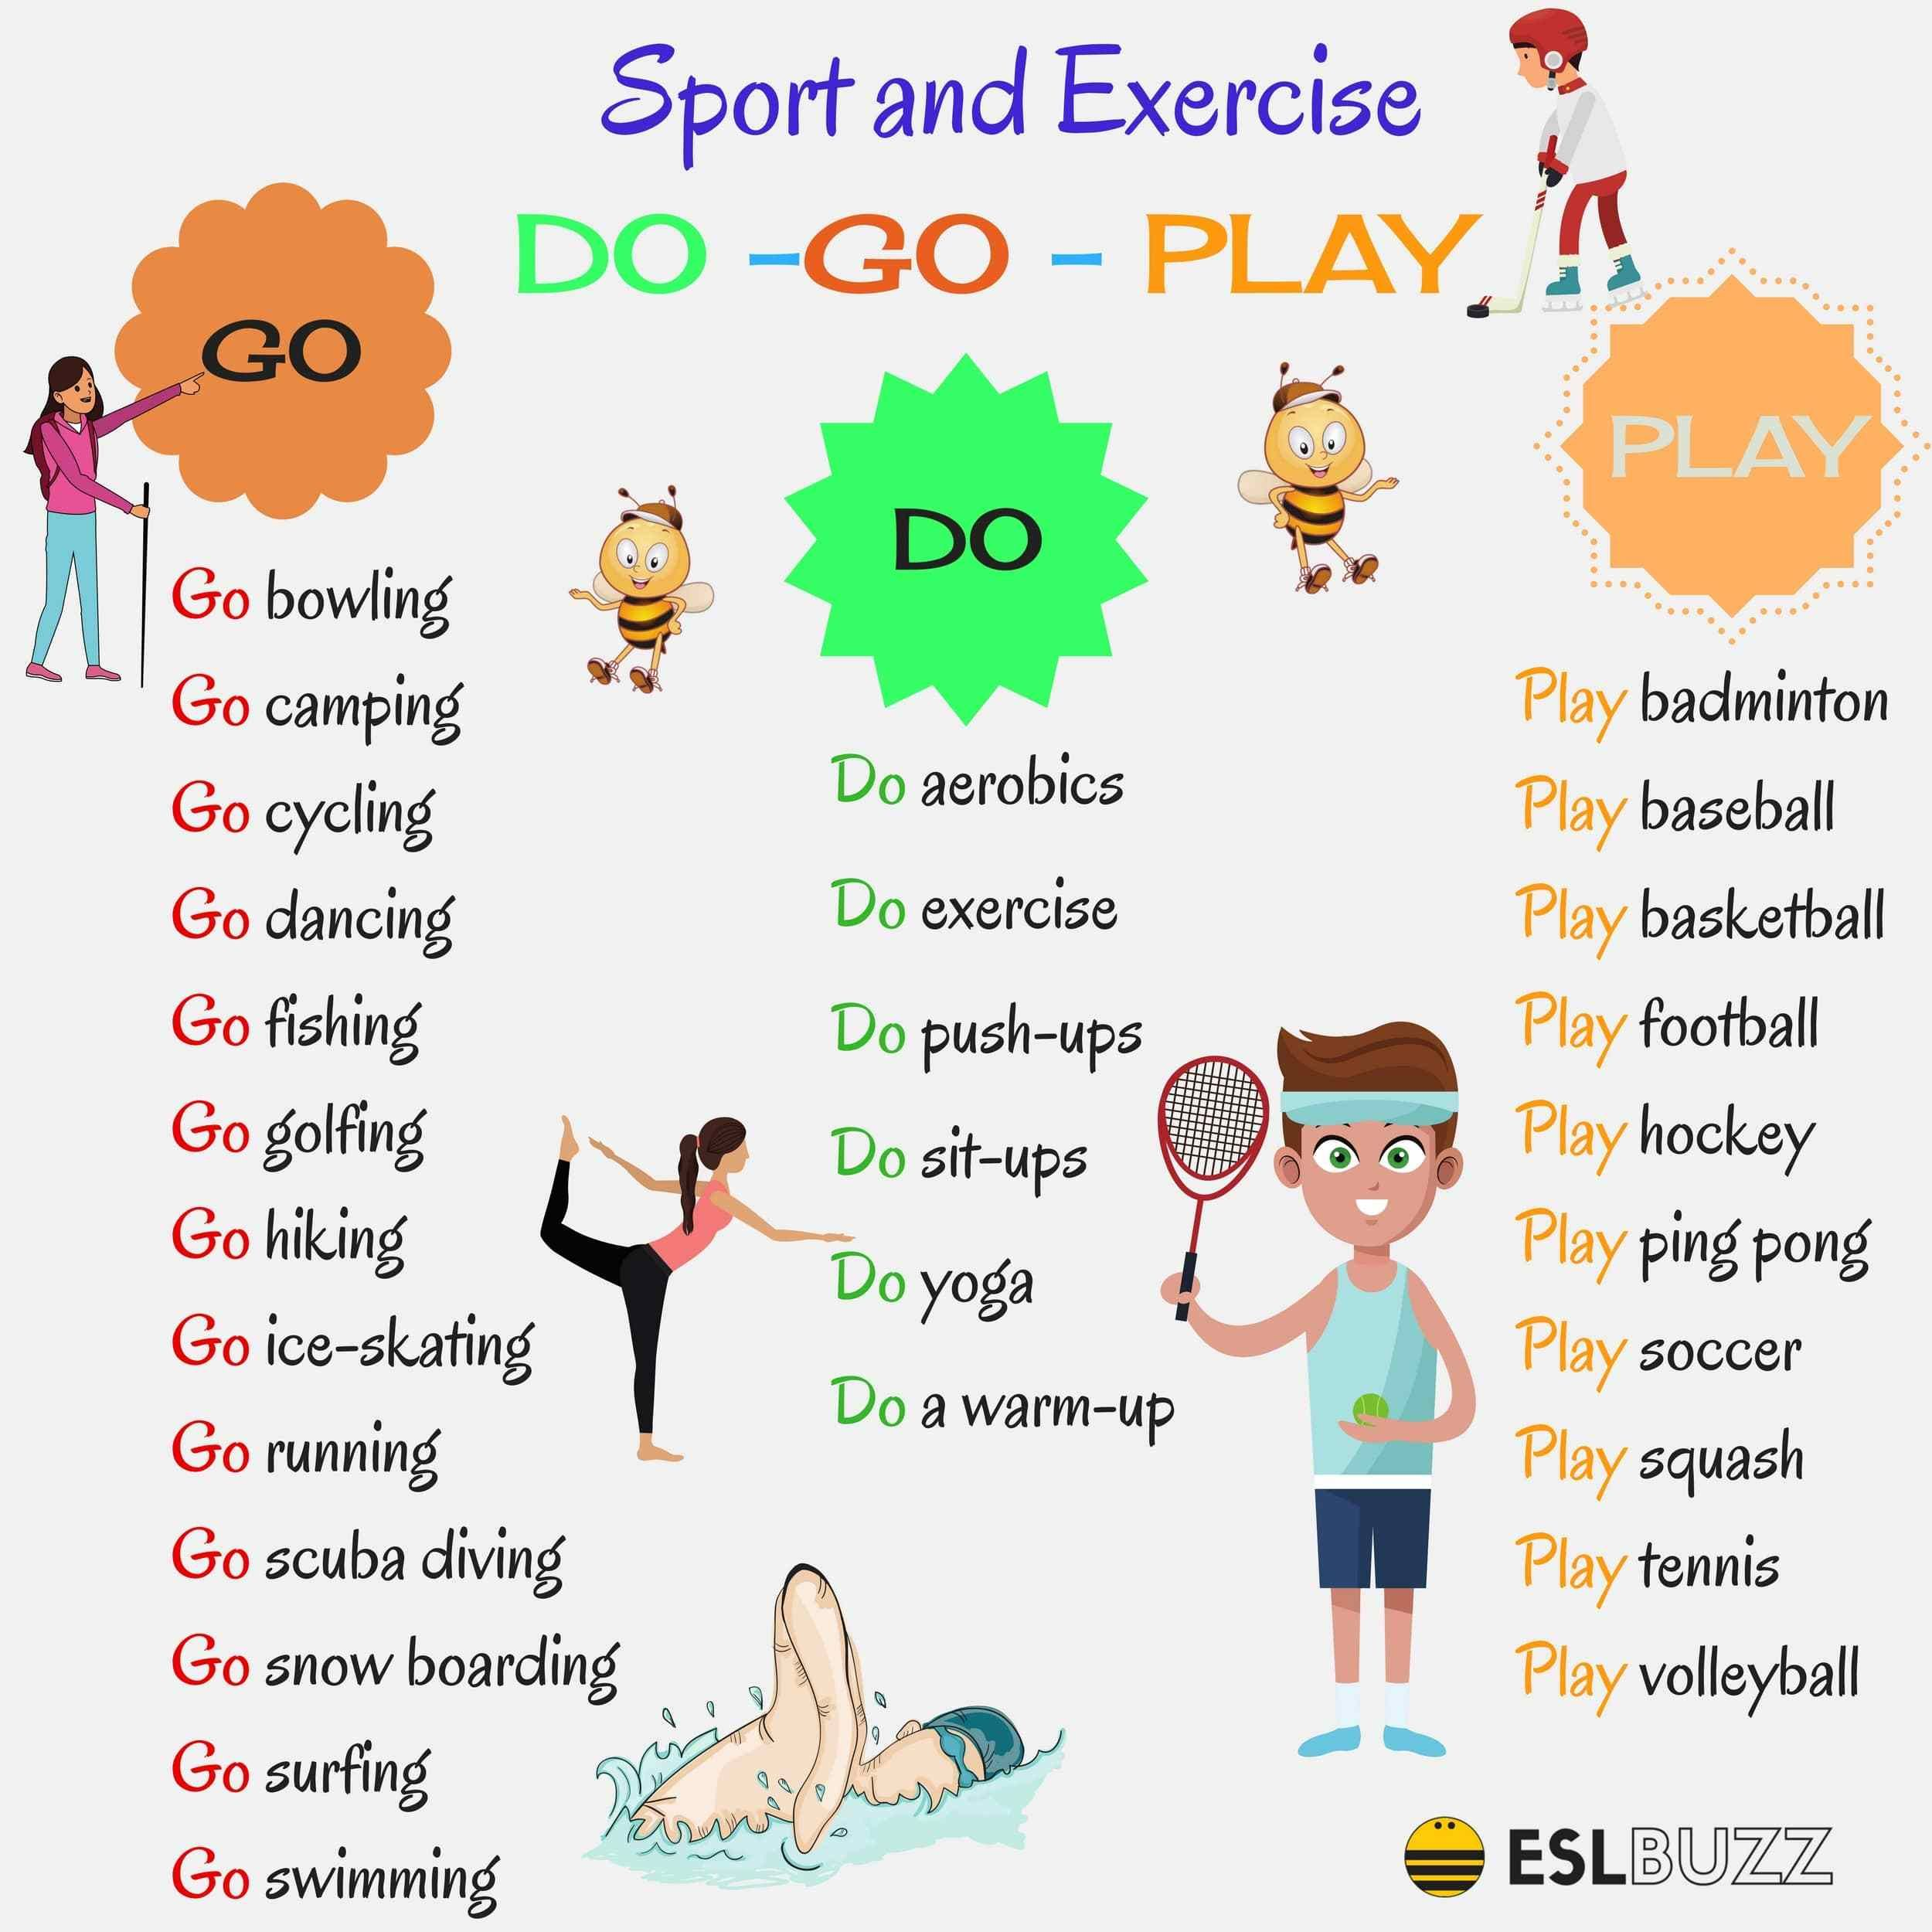 How To Use Do Go And Play With Sports And Activities